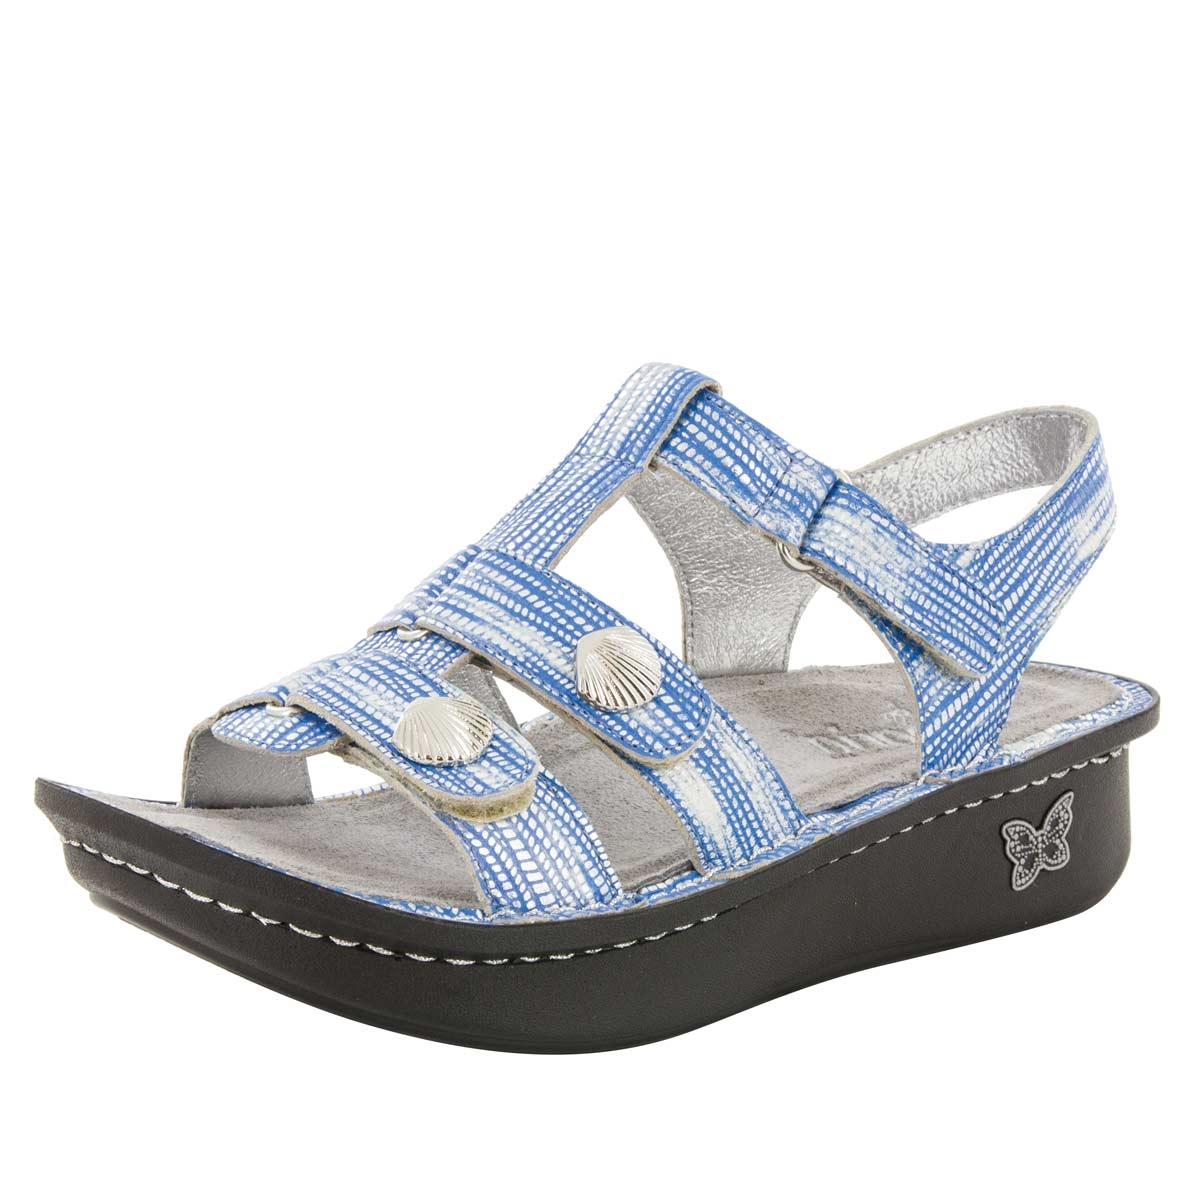 Alegria Kleo Wrapture Blues comfort sandals for women · View Larger Photo  Email ...